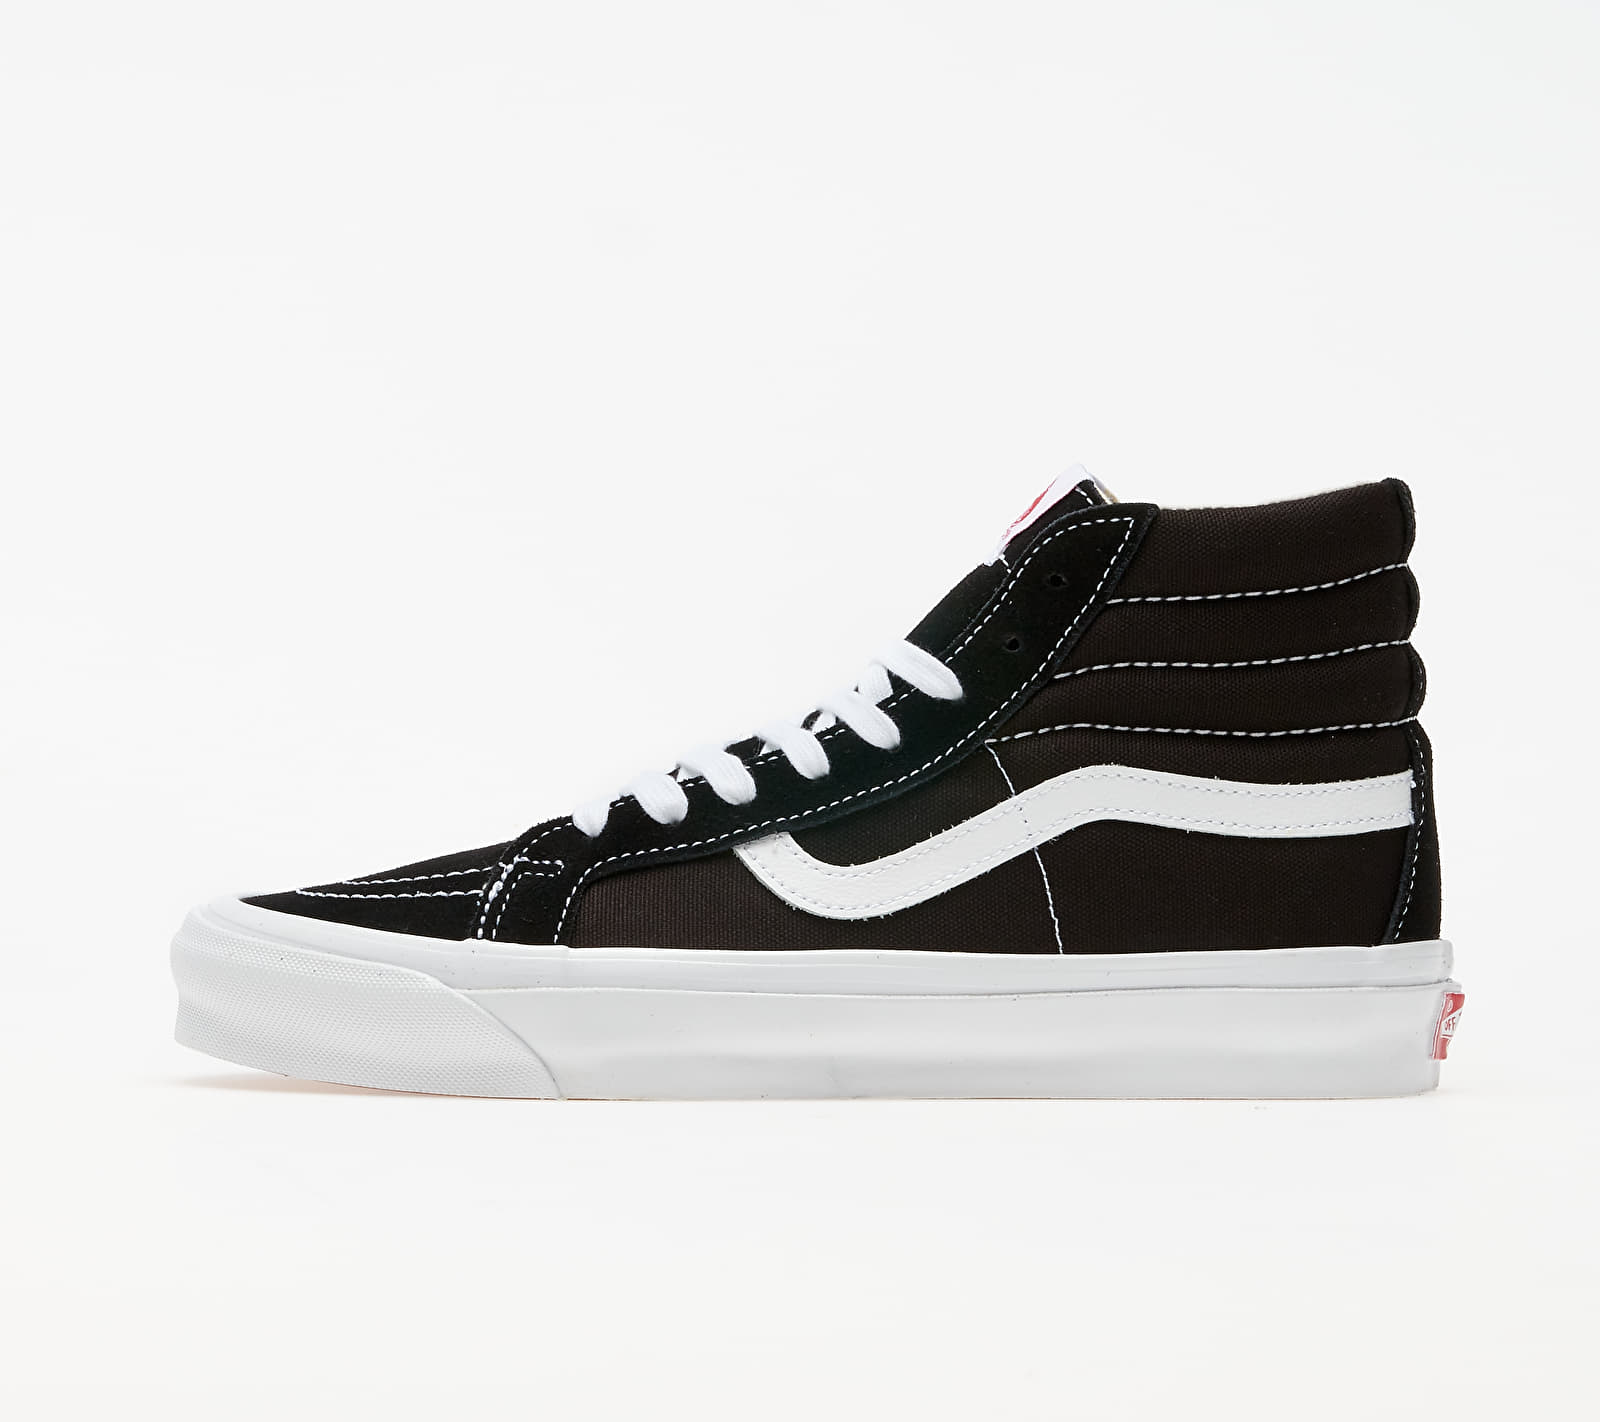 Vans Vault OG Sk8-Hi LX (Suede/ Canvas) Black/ True White EUR 43